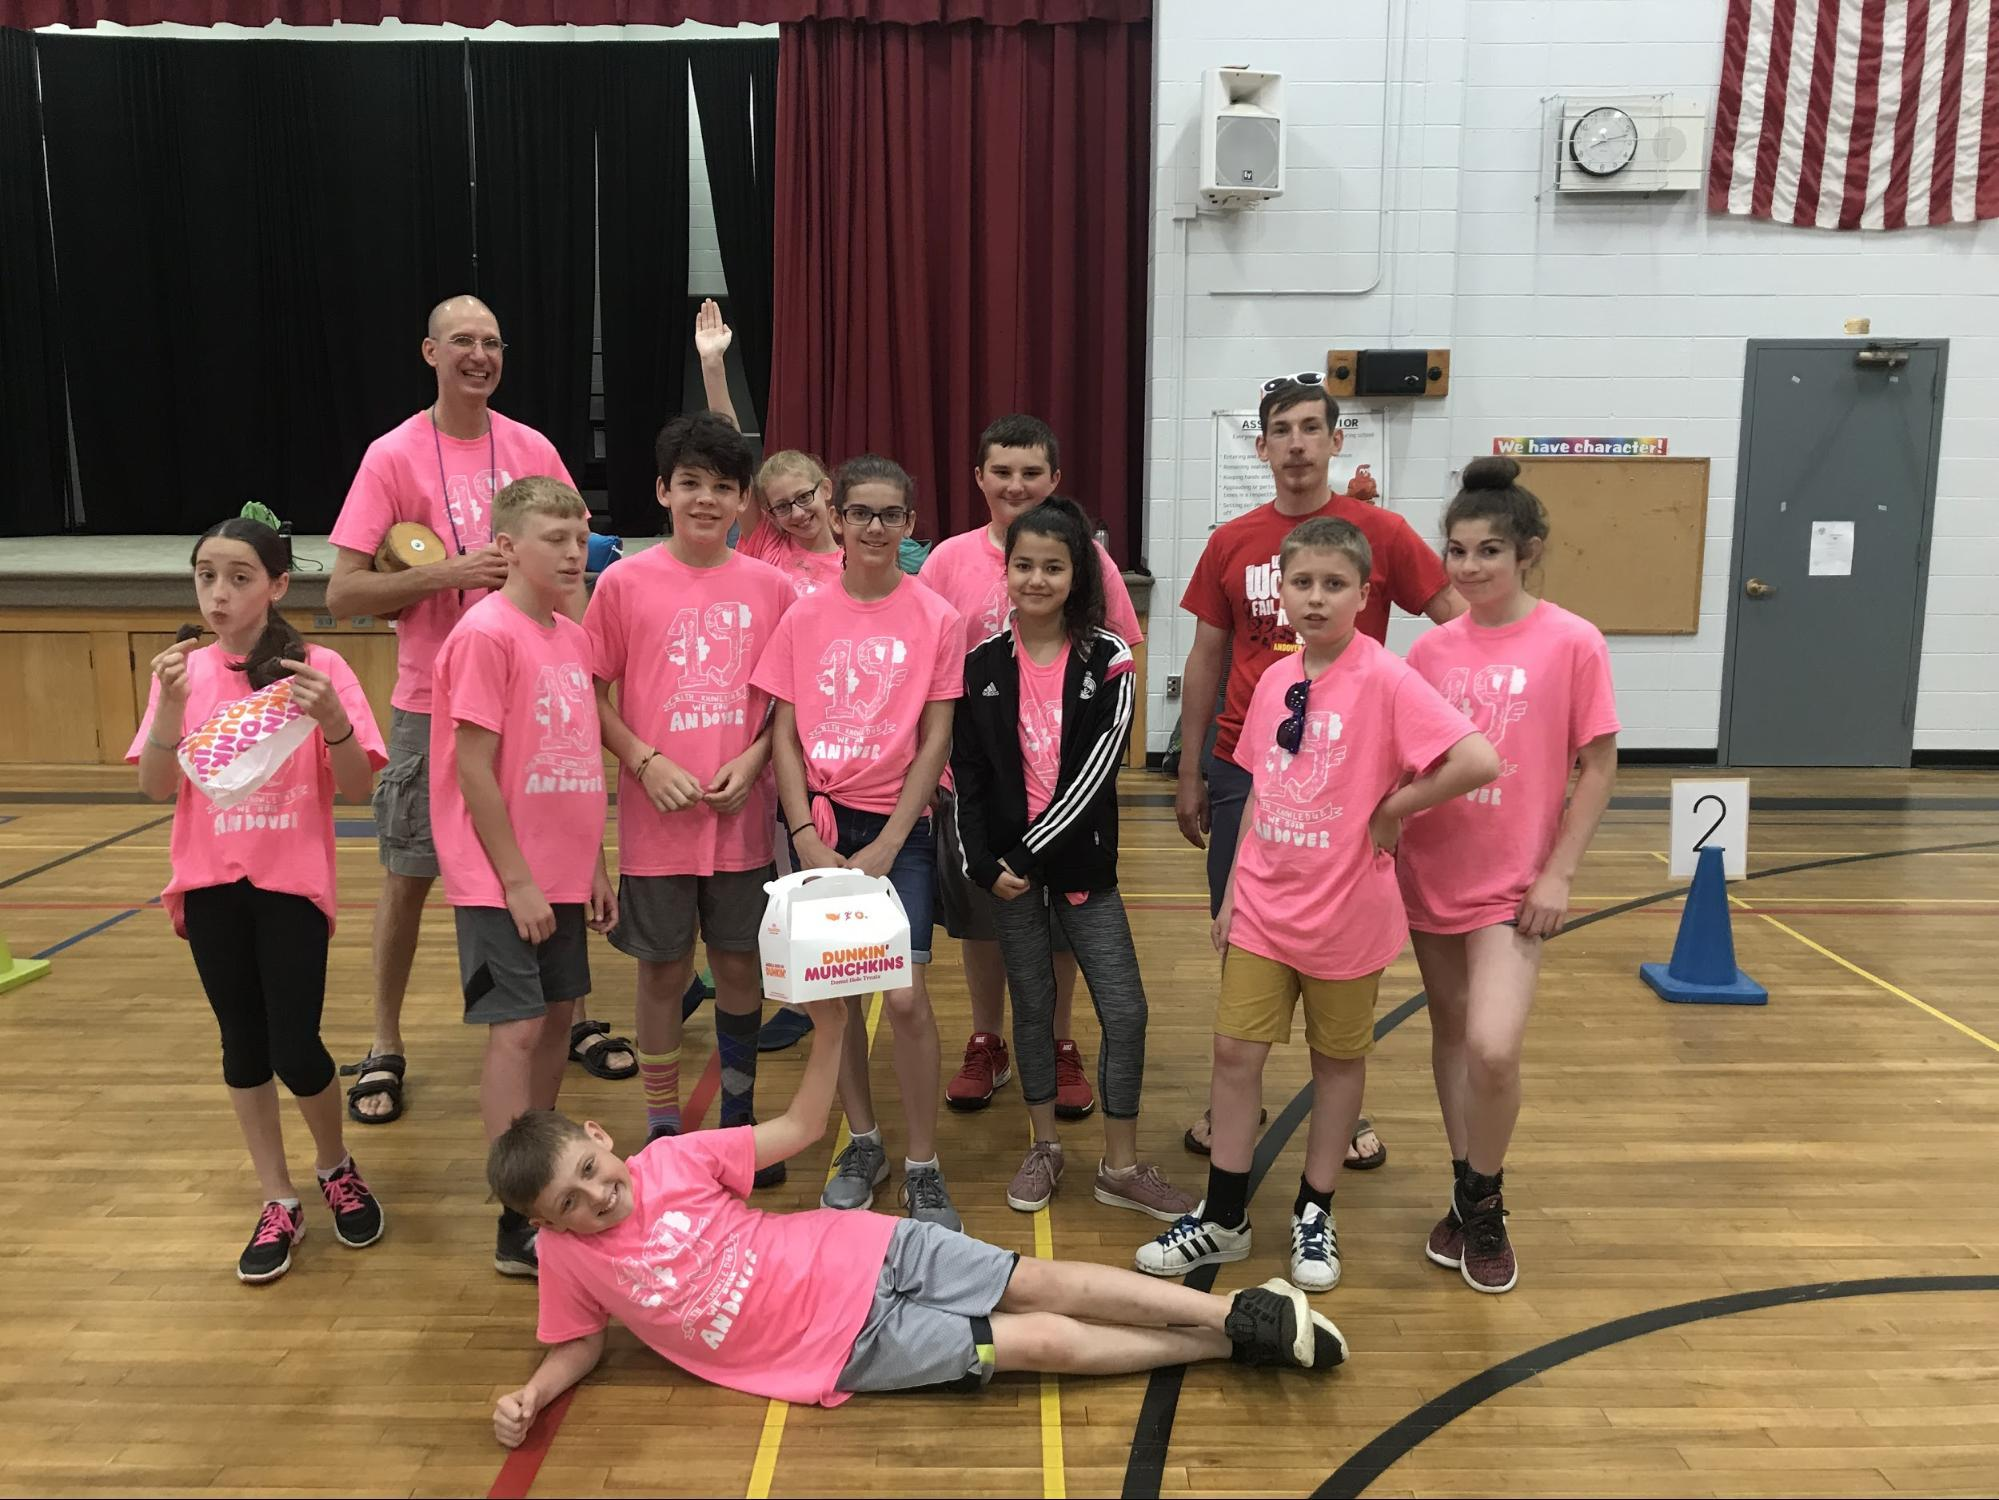 Sixth graders in gym for field day